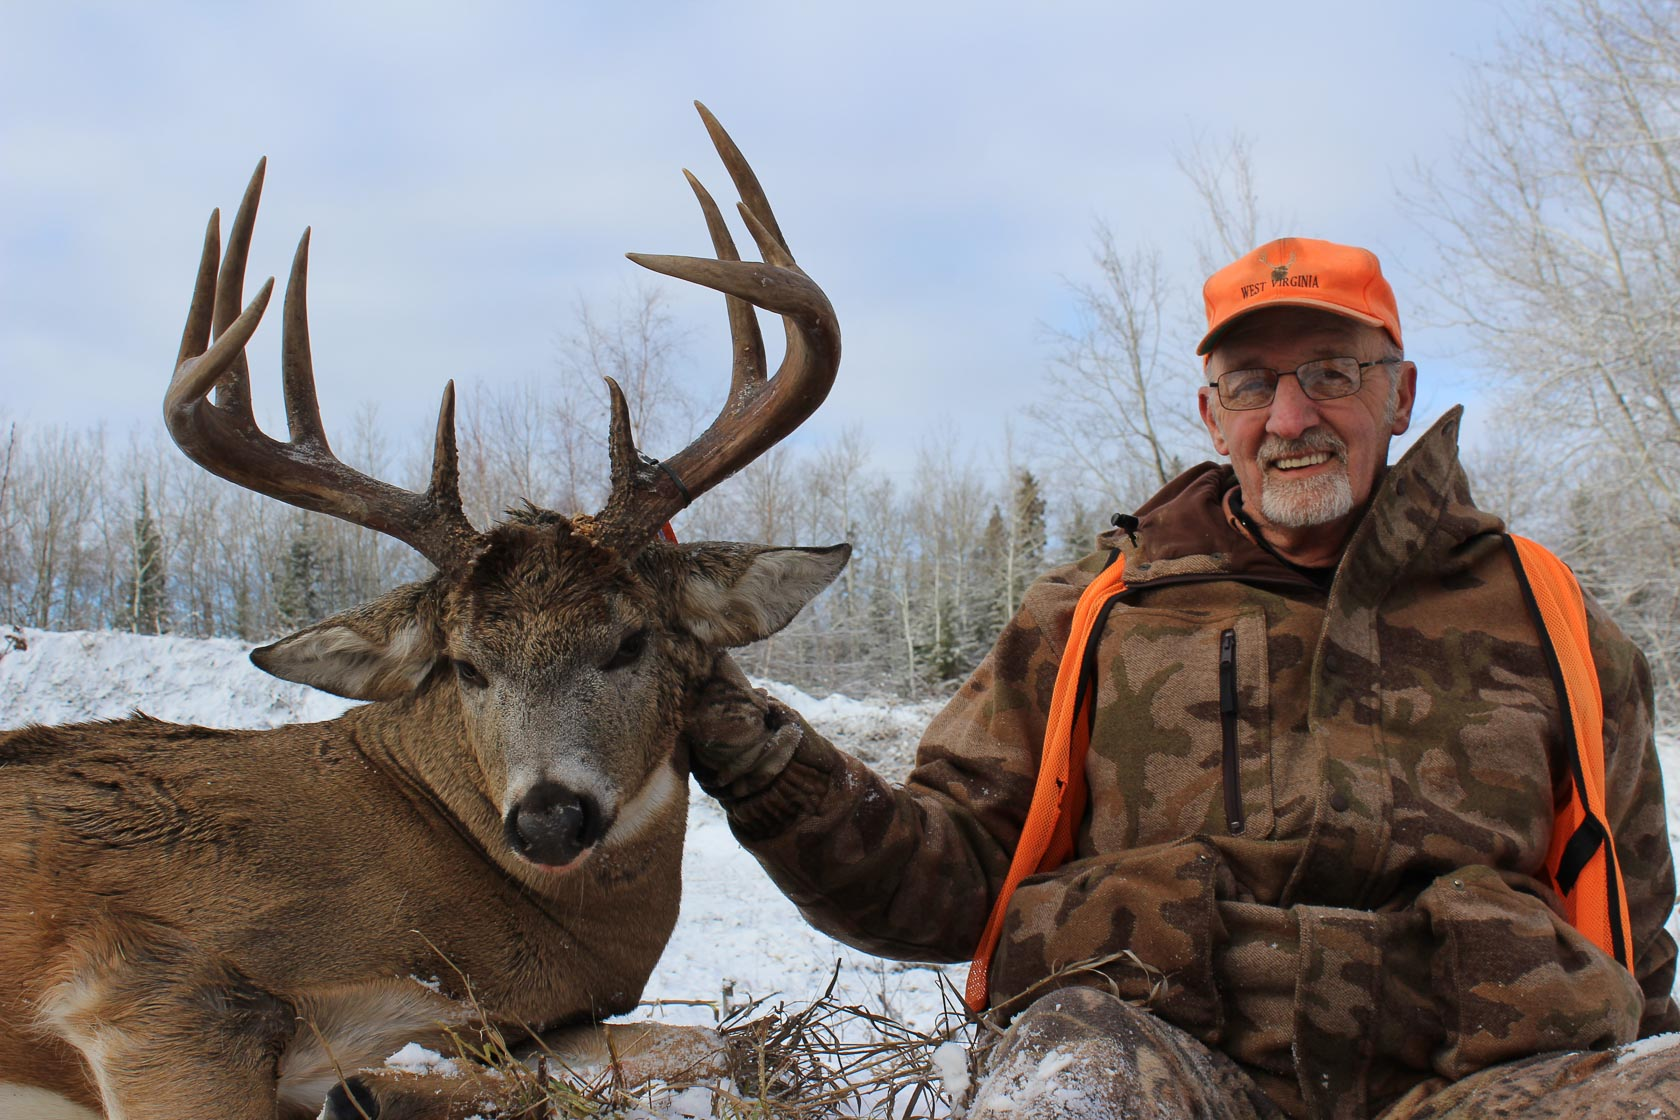 An older gentleman wearing camouflage, an orange safety vest, and an orange hat sits next to a whitetail deer near Smootsthone Lake Lodge in Saskatchewan, Canada.